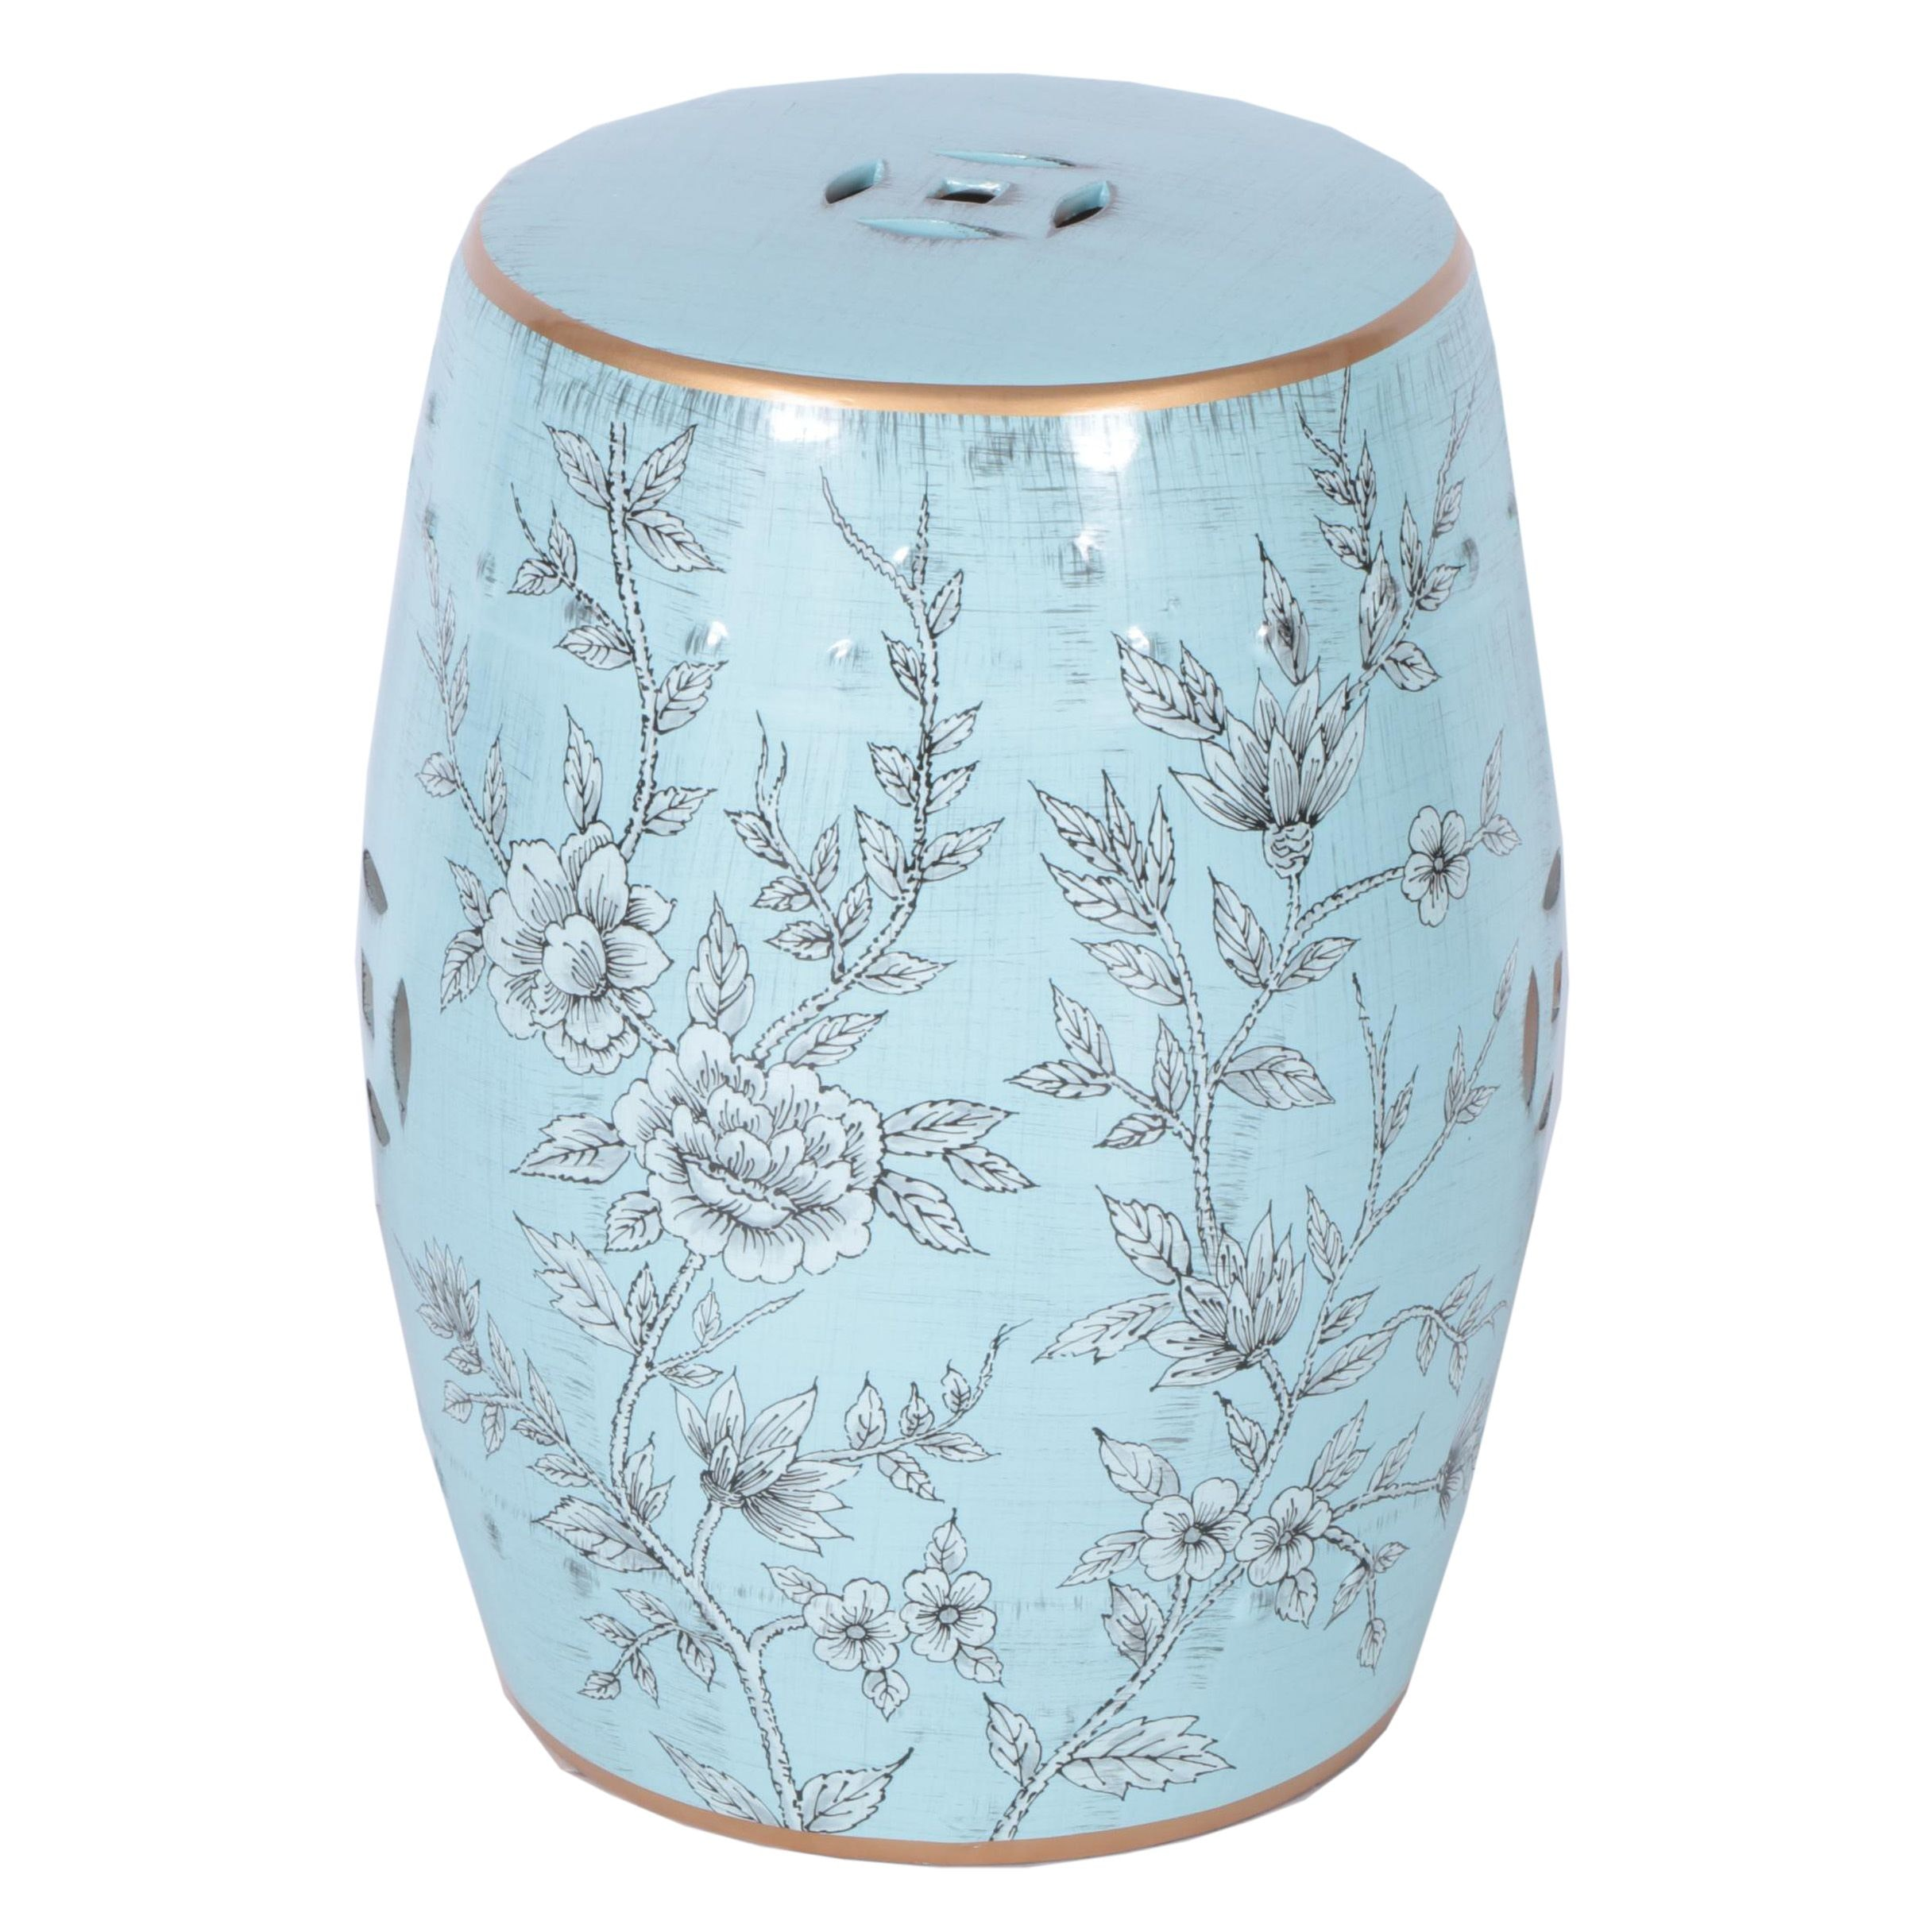 Blue Floral Themed Ceramic Garden Stool